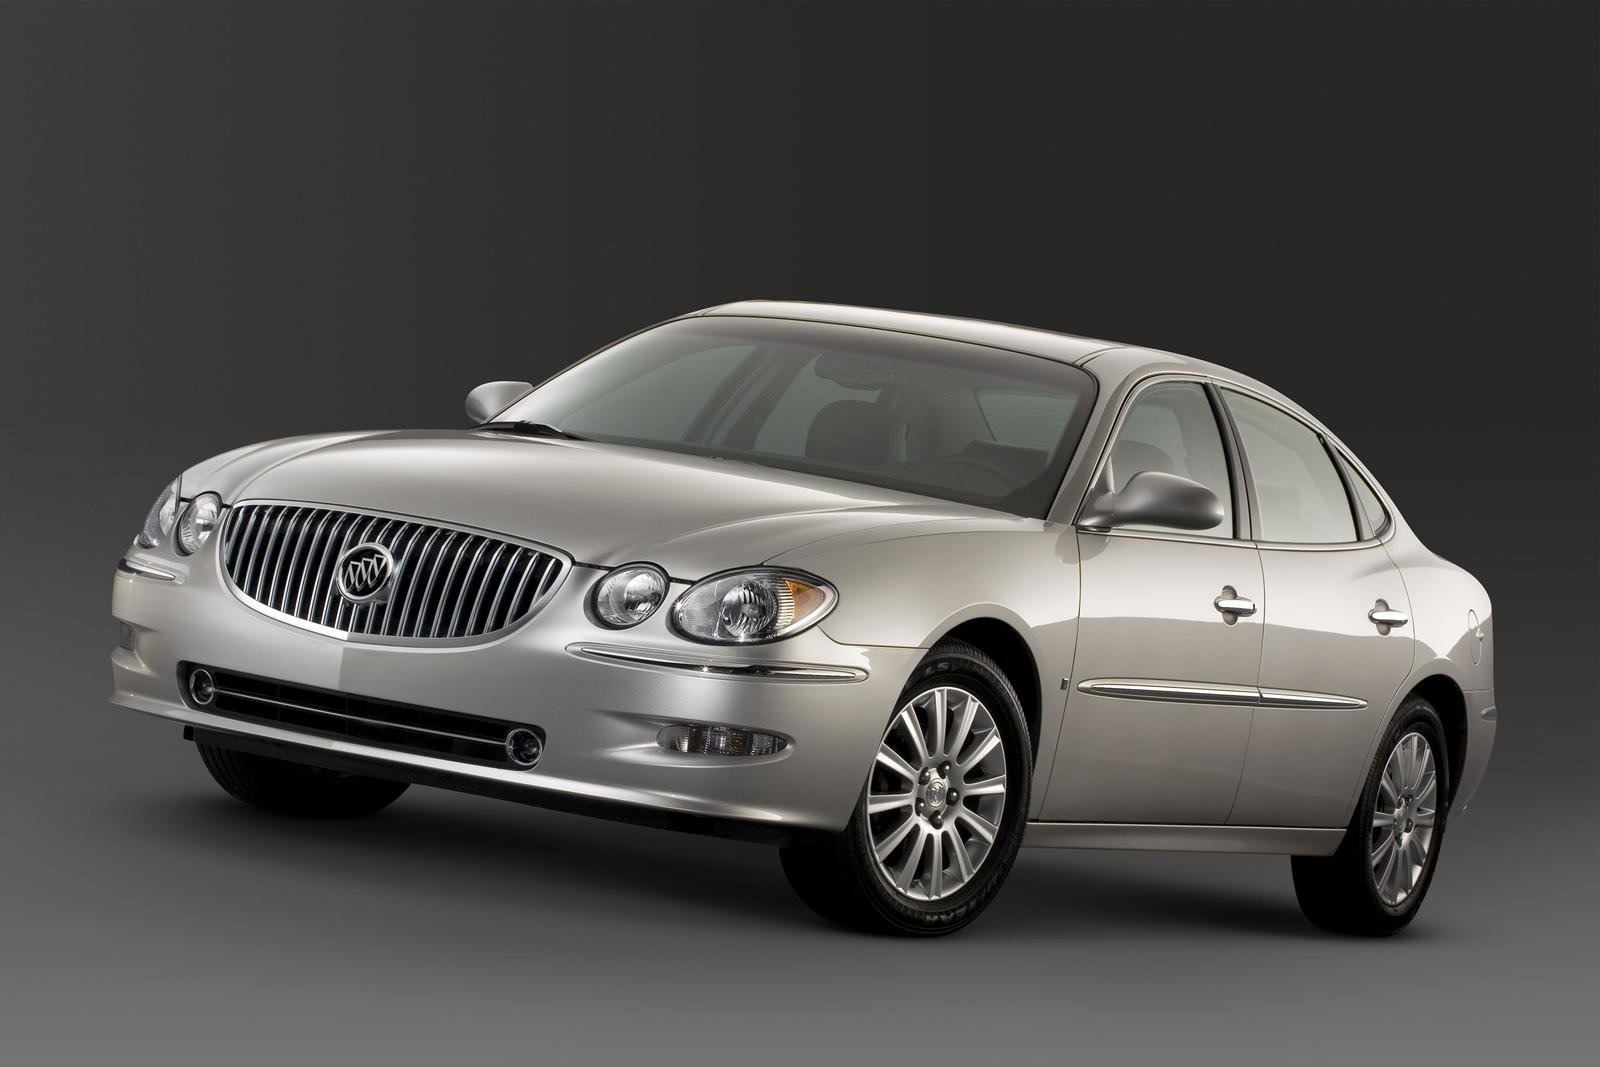 Buick Cars List: 2008 Buick LaCrosse Review